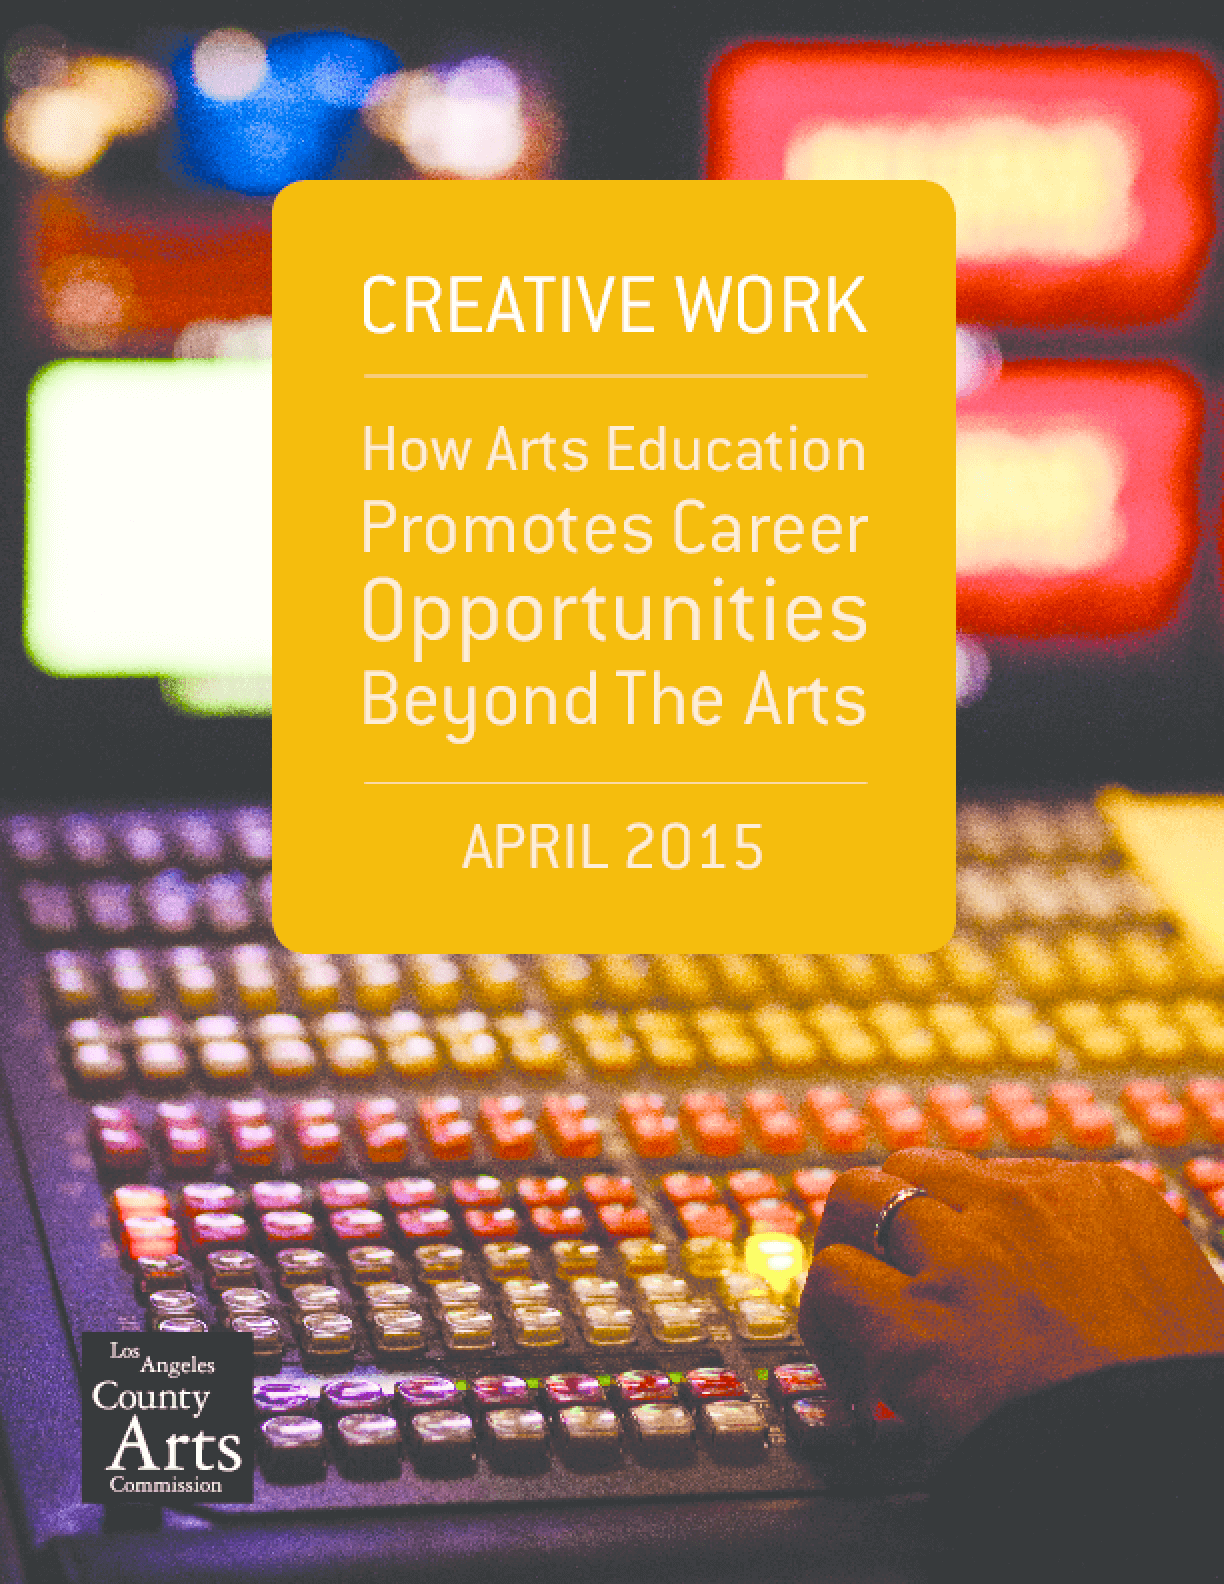 Creative Work: How Arts Education Promotes Career Opportunities Beyond the Arts